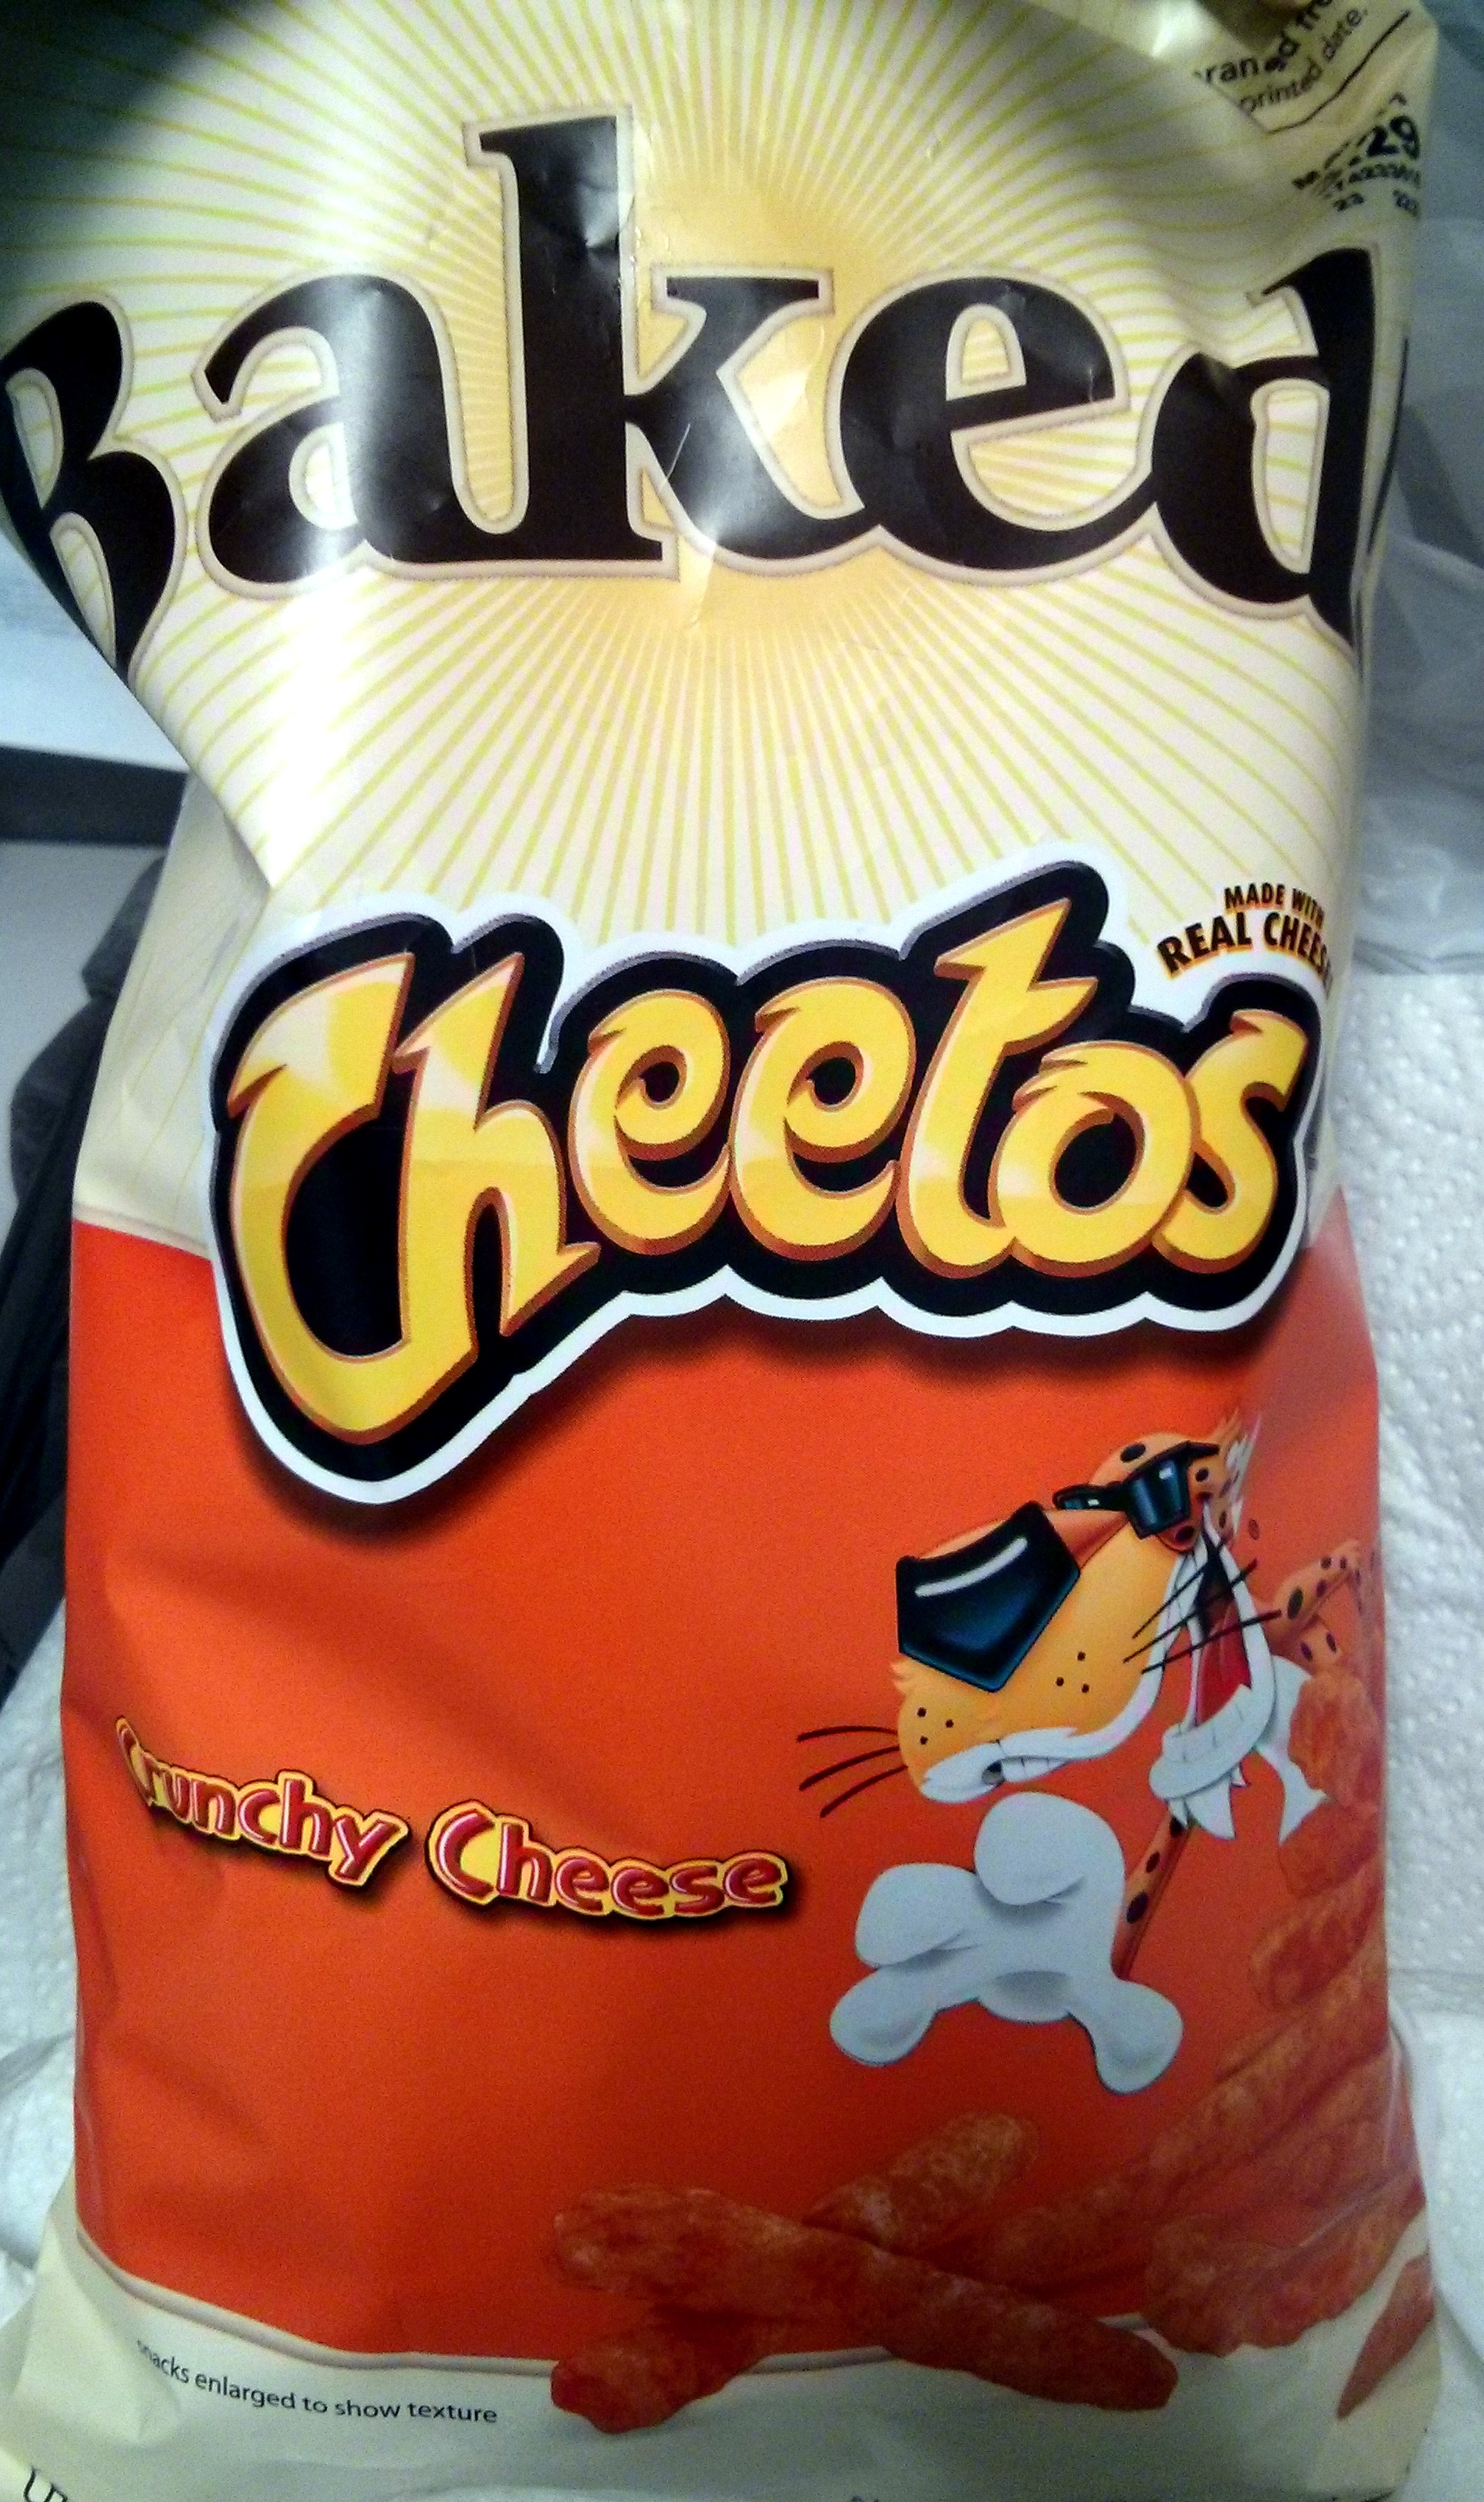 Baked Cheetos - Product